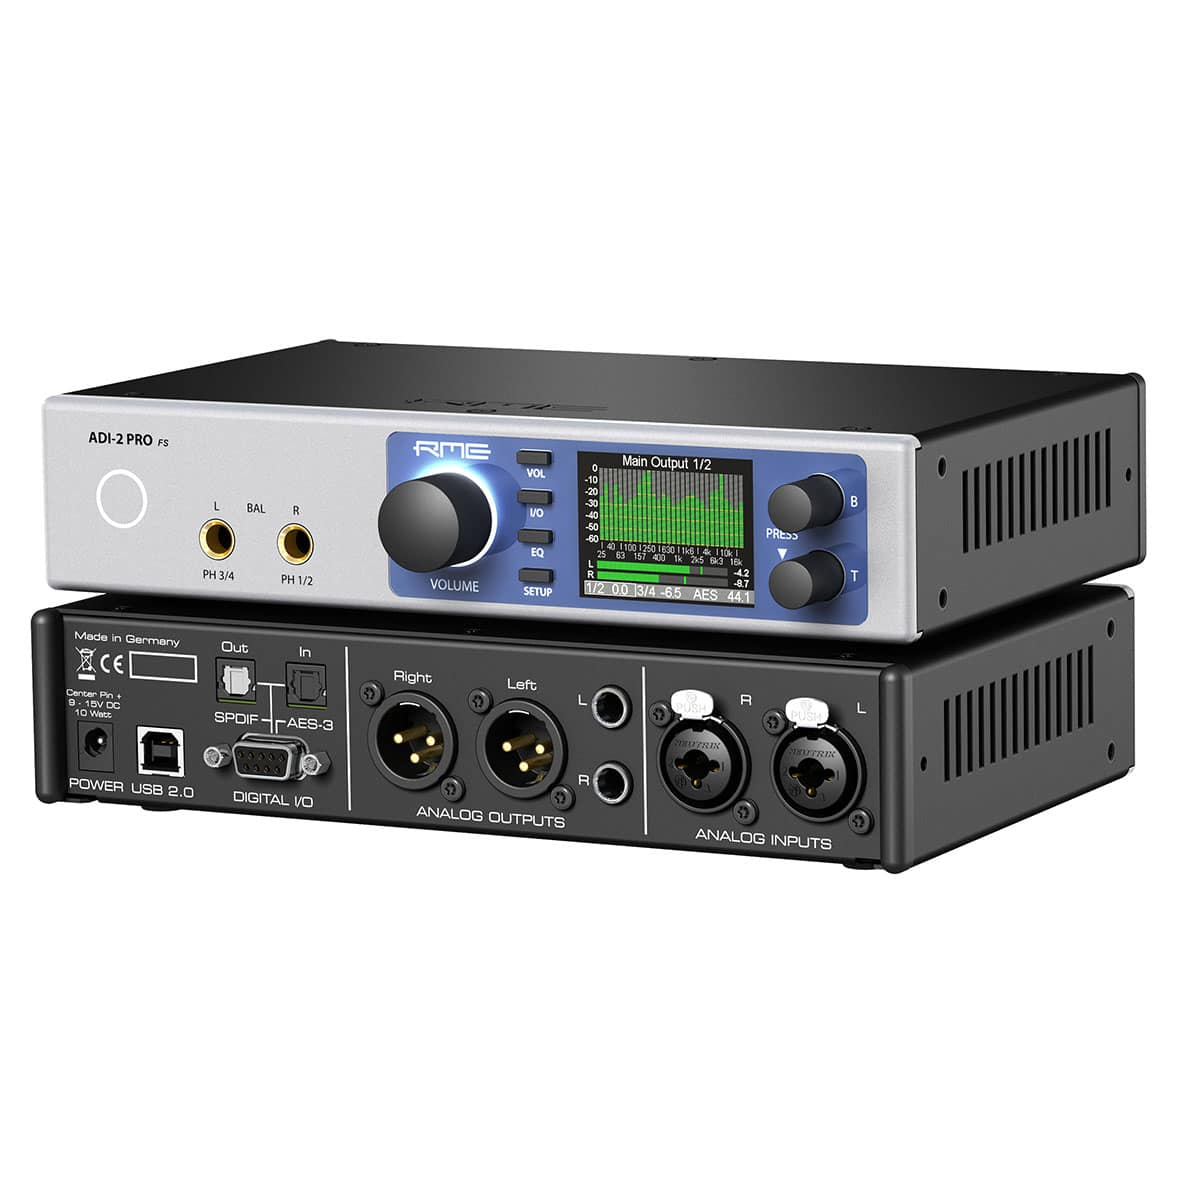 RME ADI 2 PRO FS 03 Convertitori Audio, Pro Audio, Audio Digitale, Schede Audio per PC e MAC